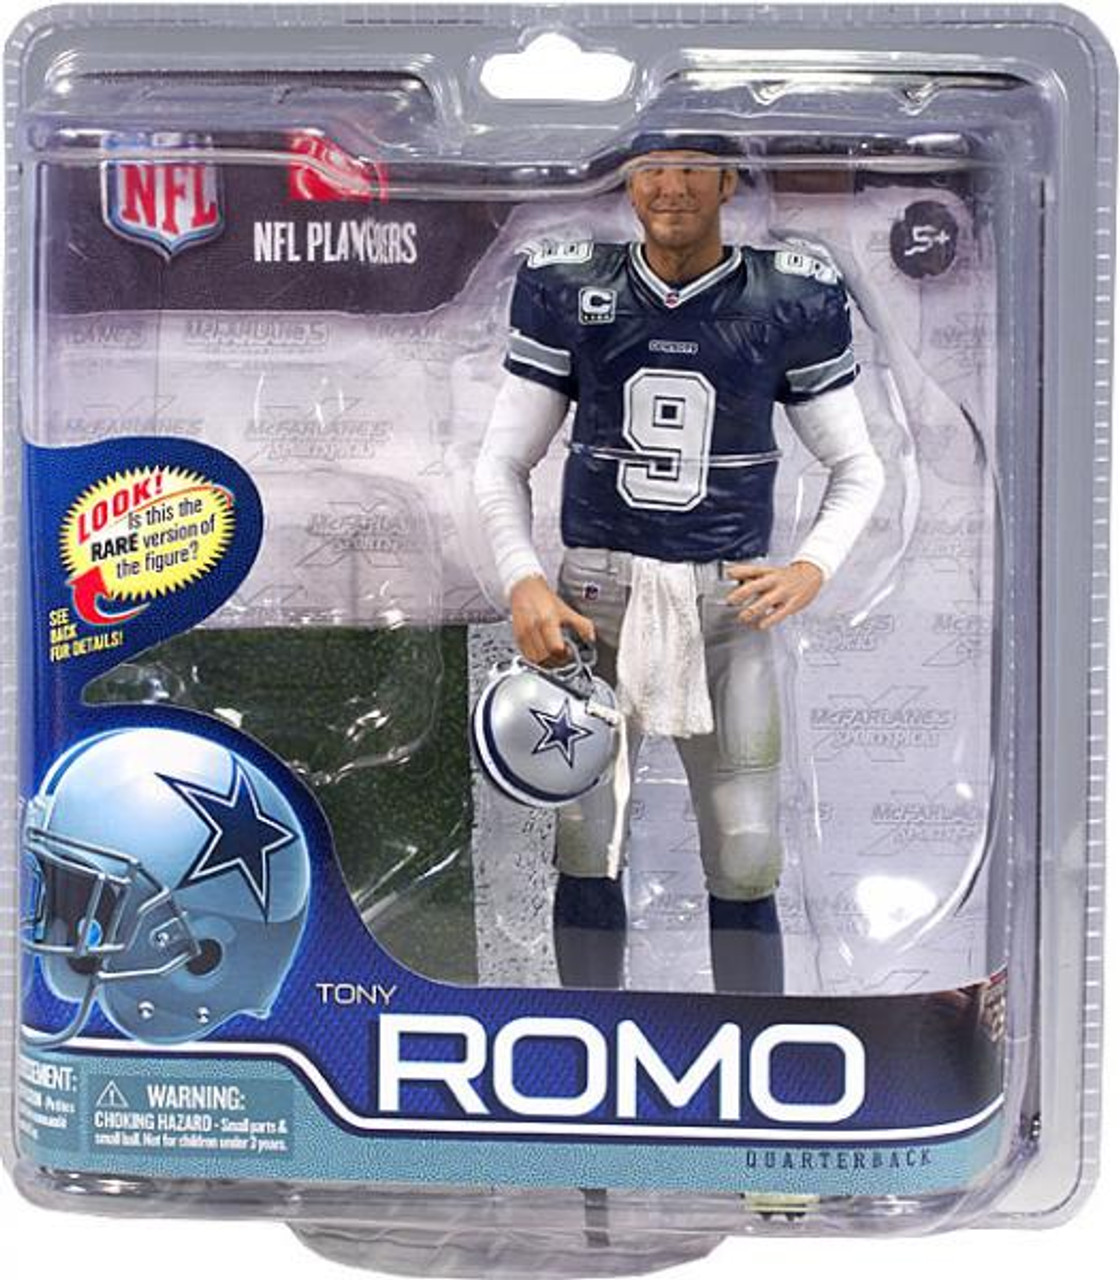 McFarlane Toys NFL Dallas Cowboys Sports Picks Series 29 Tony Romo Action Figure [Blue Jersey]